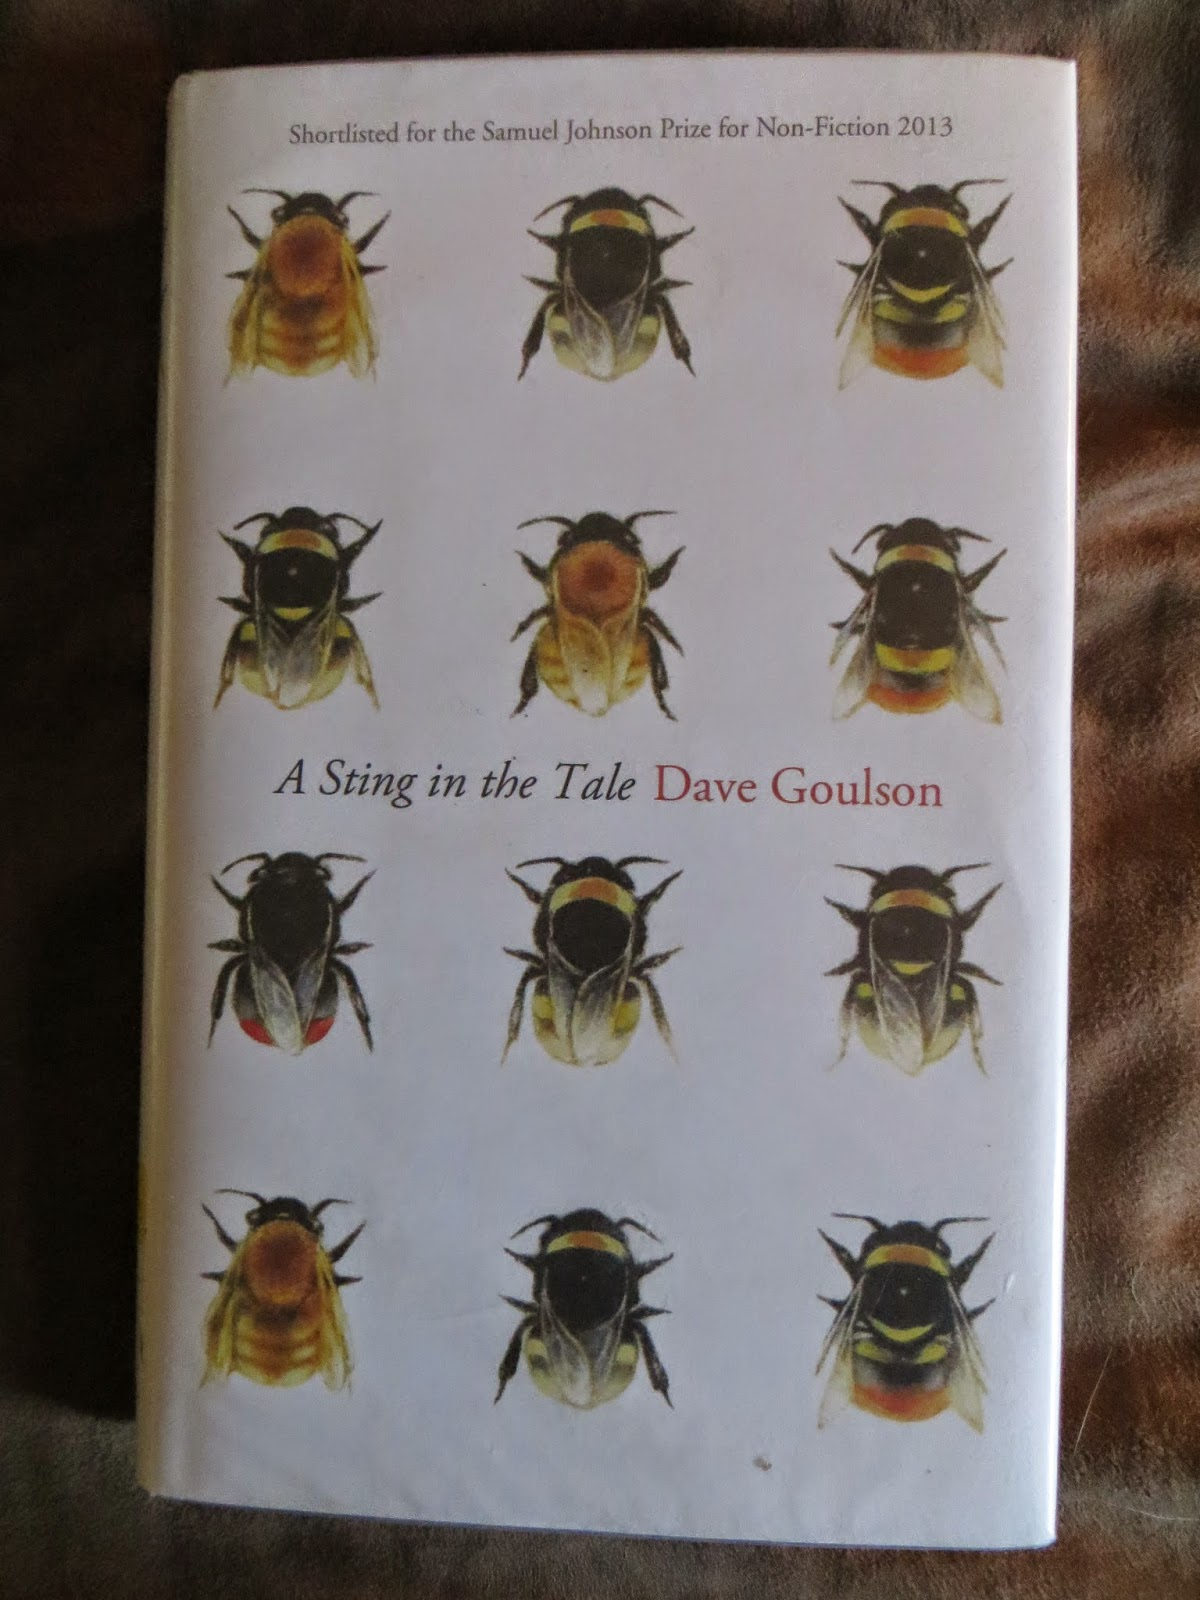 A Sting in the Tale by Dave Goulson.......Book Review